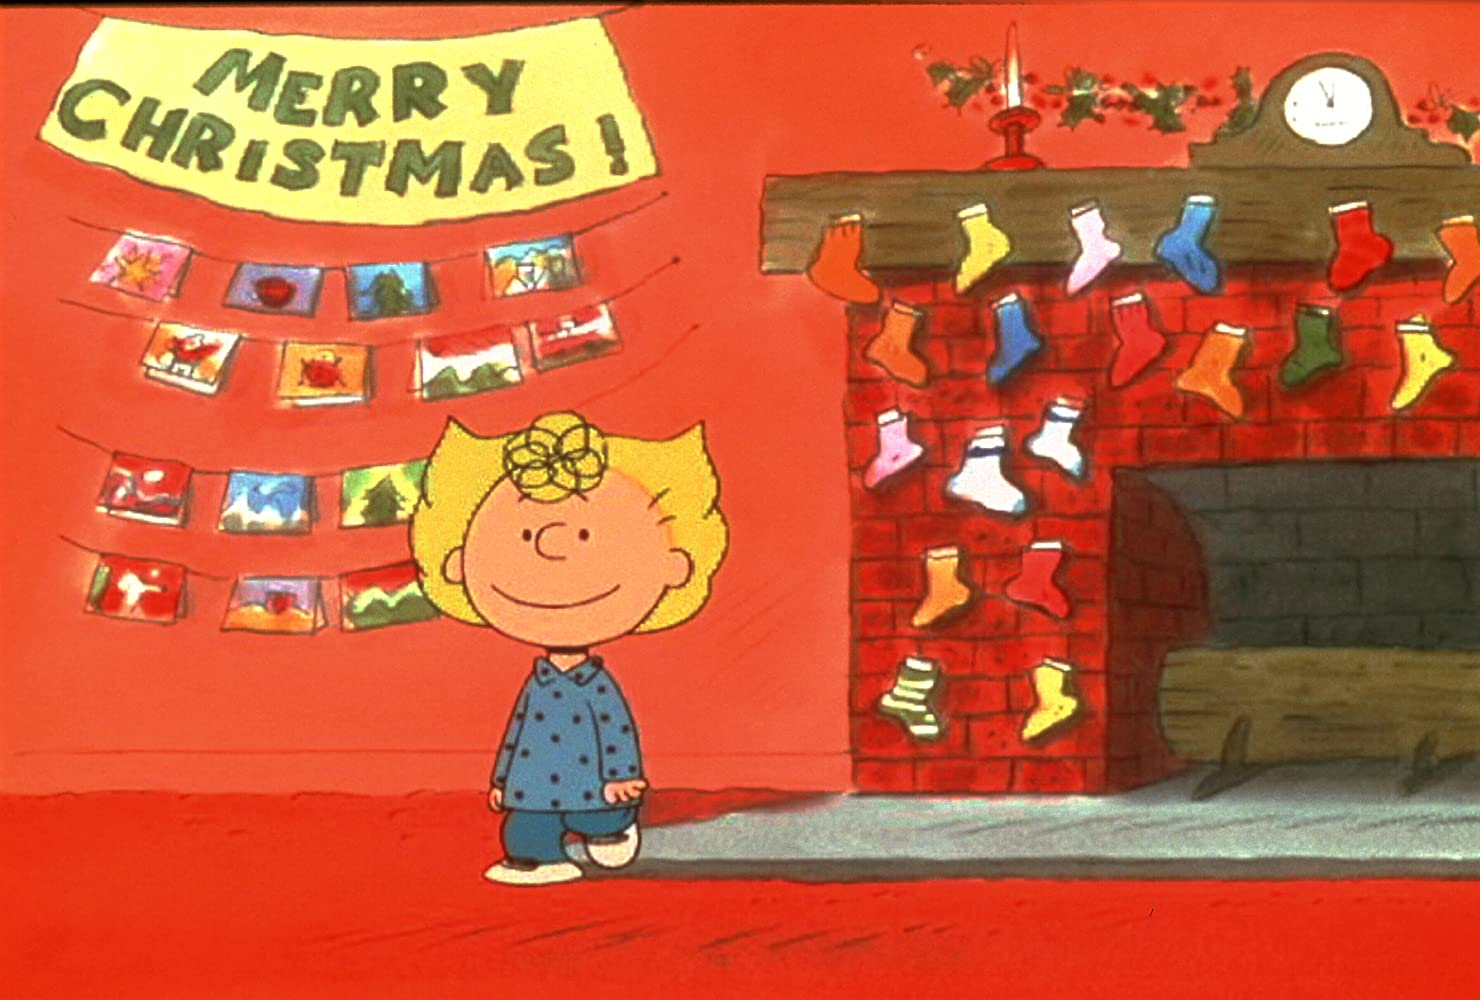 Charlie Browns Christmas Tales.Charlie Brown S Christmas Tales 2002